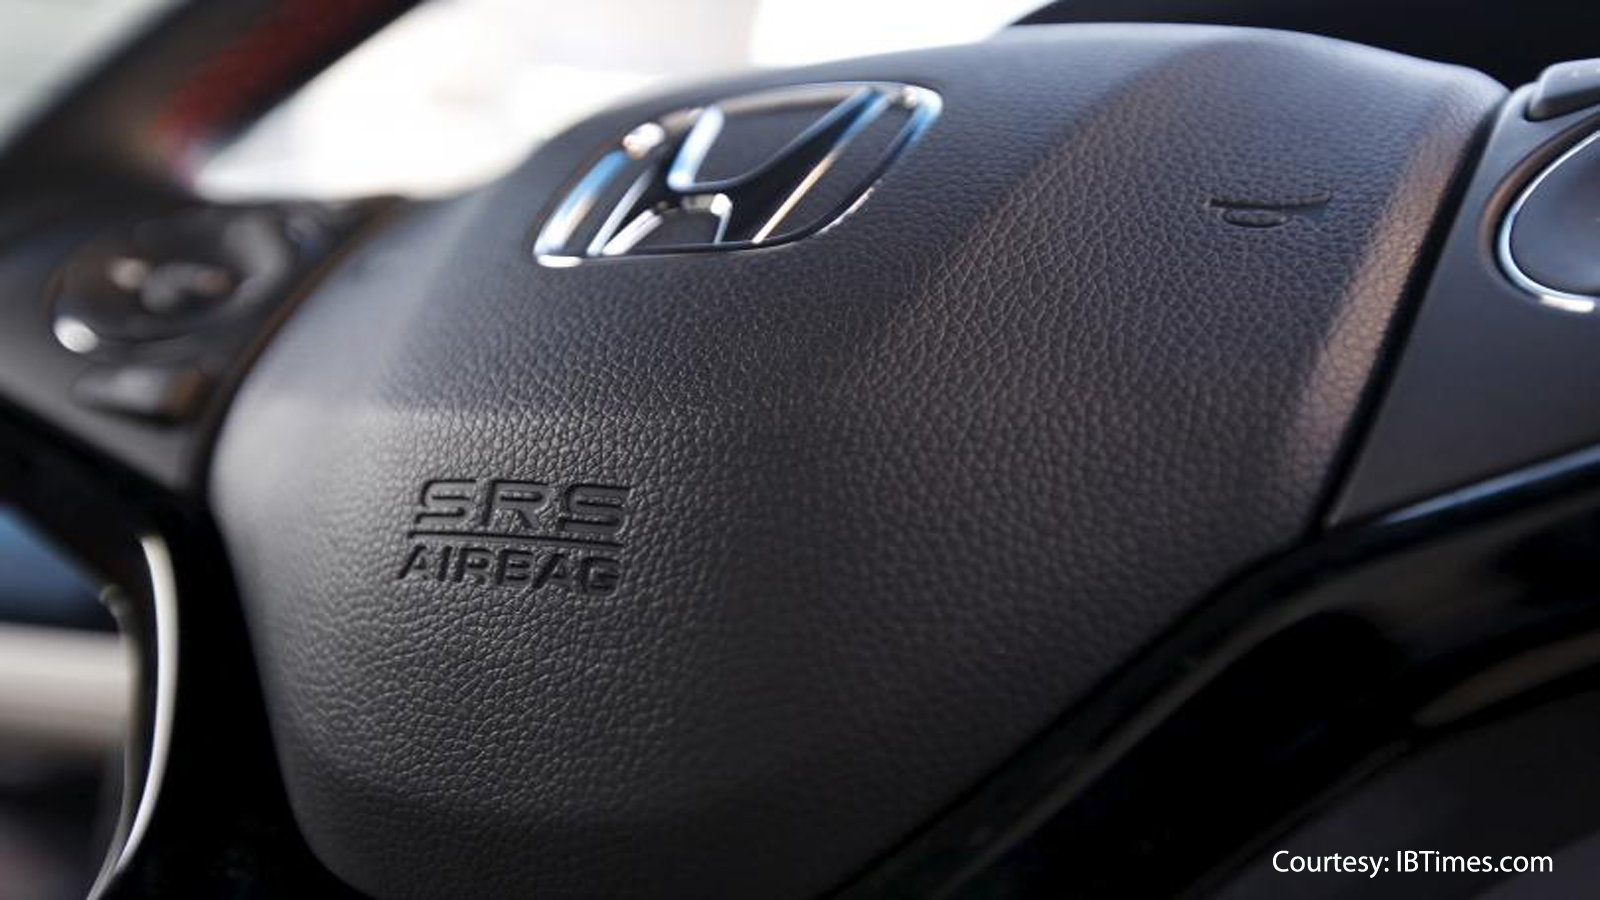 Inside the Faulty Airbags